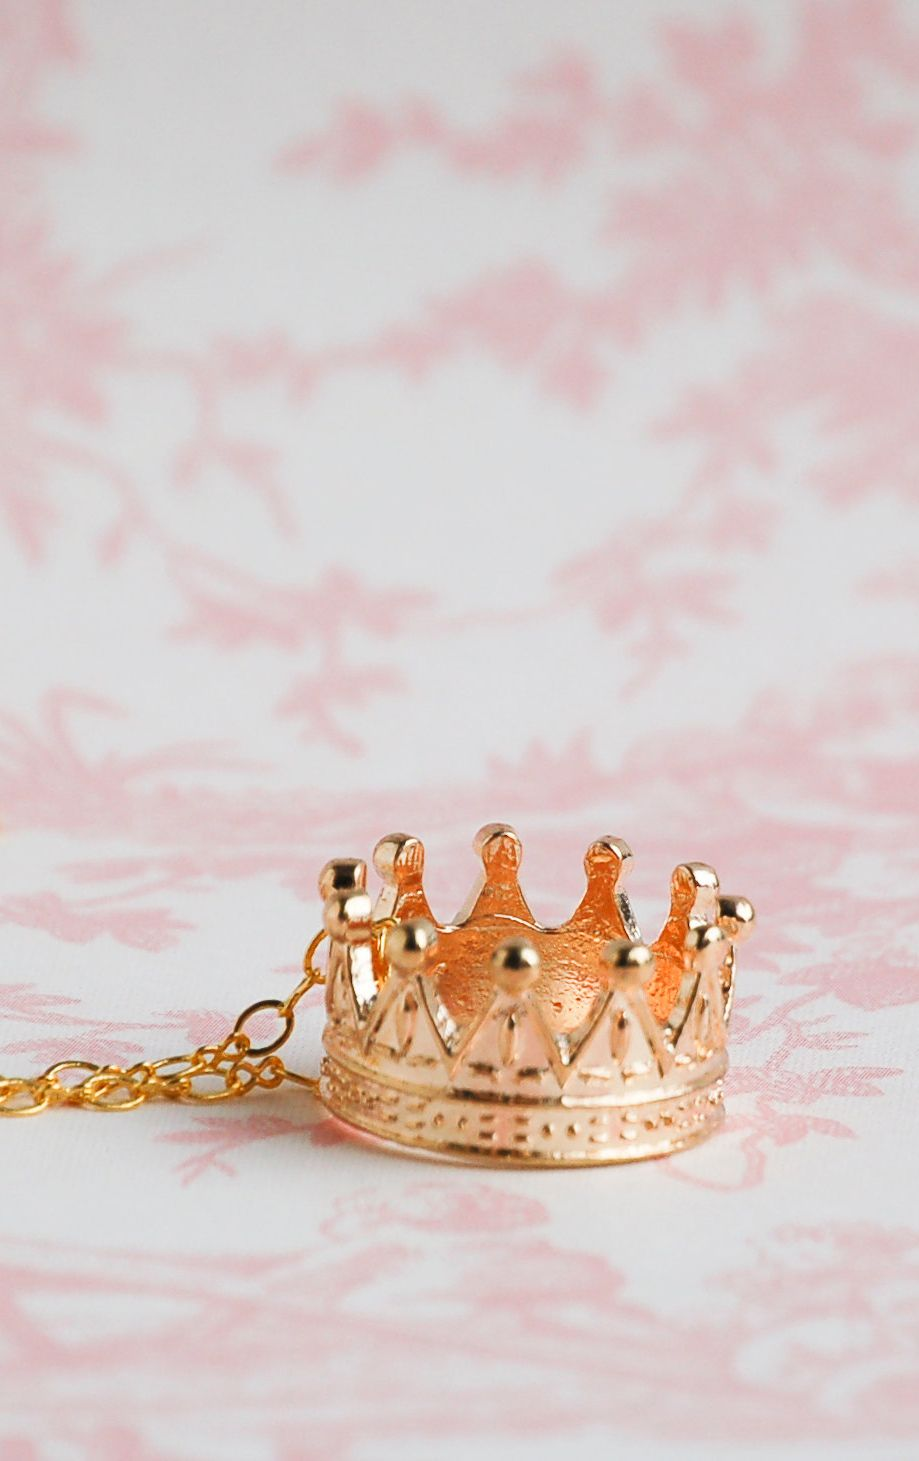 Gold CROWN Necklace Royal Queen King Fairy RING Couronnes, Bijoux Mignons,  Bijoux Uniques,